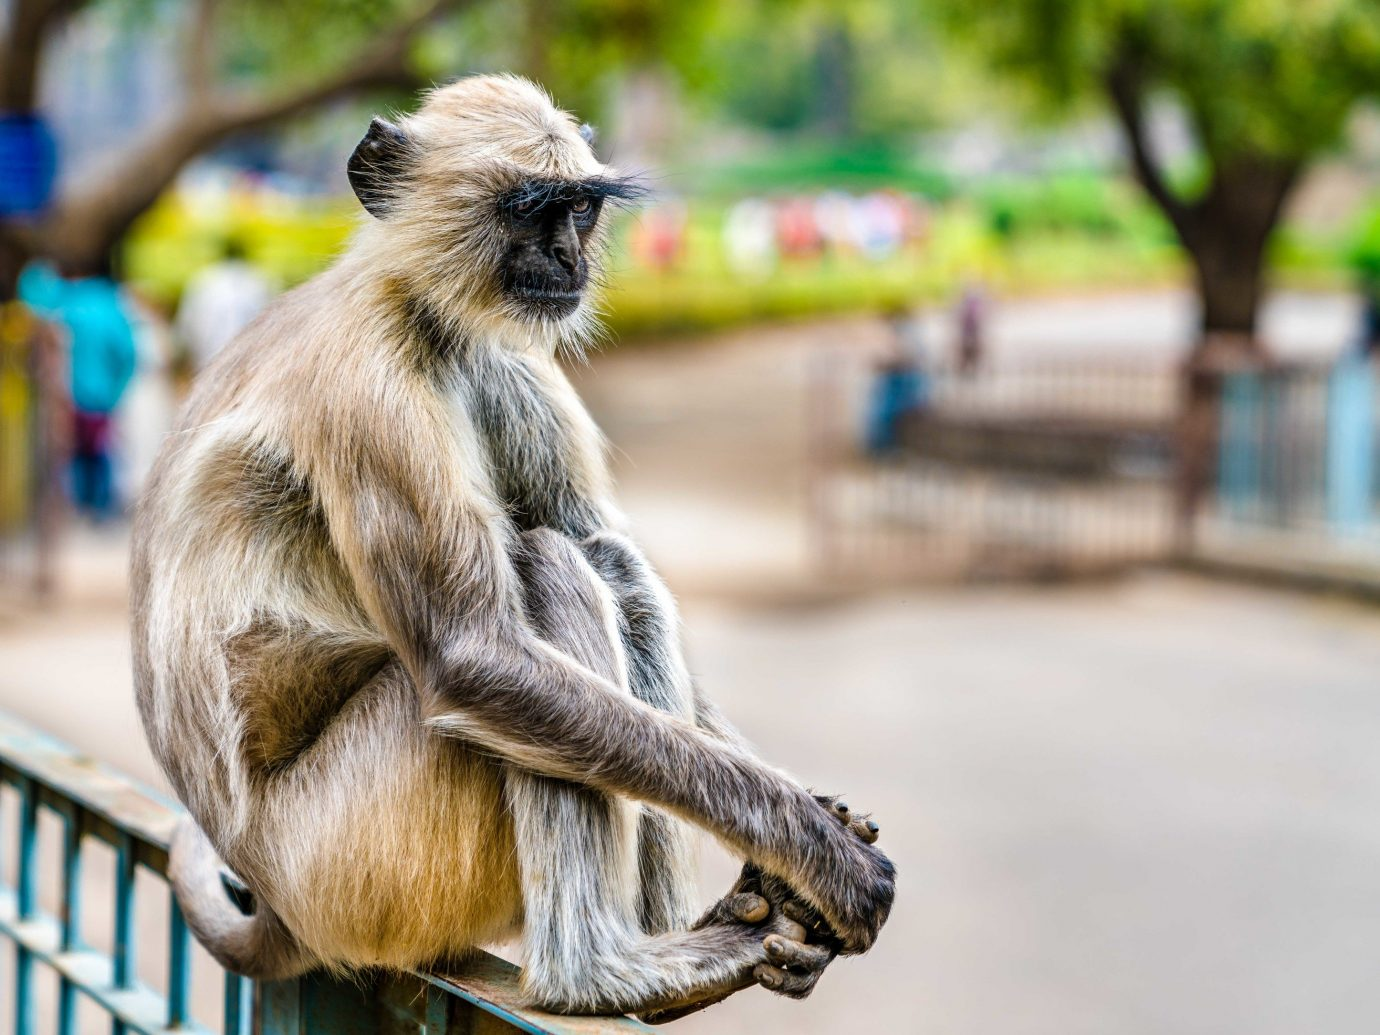 India primate animal mammal monkey outdoor fauna macaque old world monkey temple Wildlife